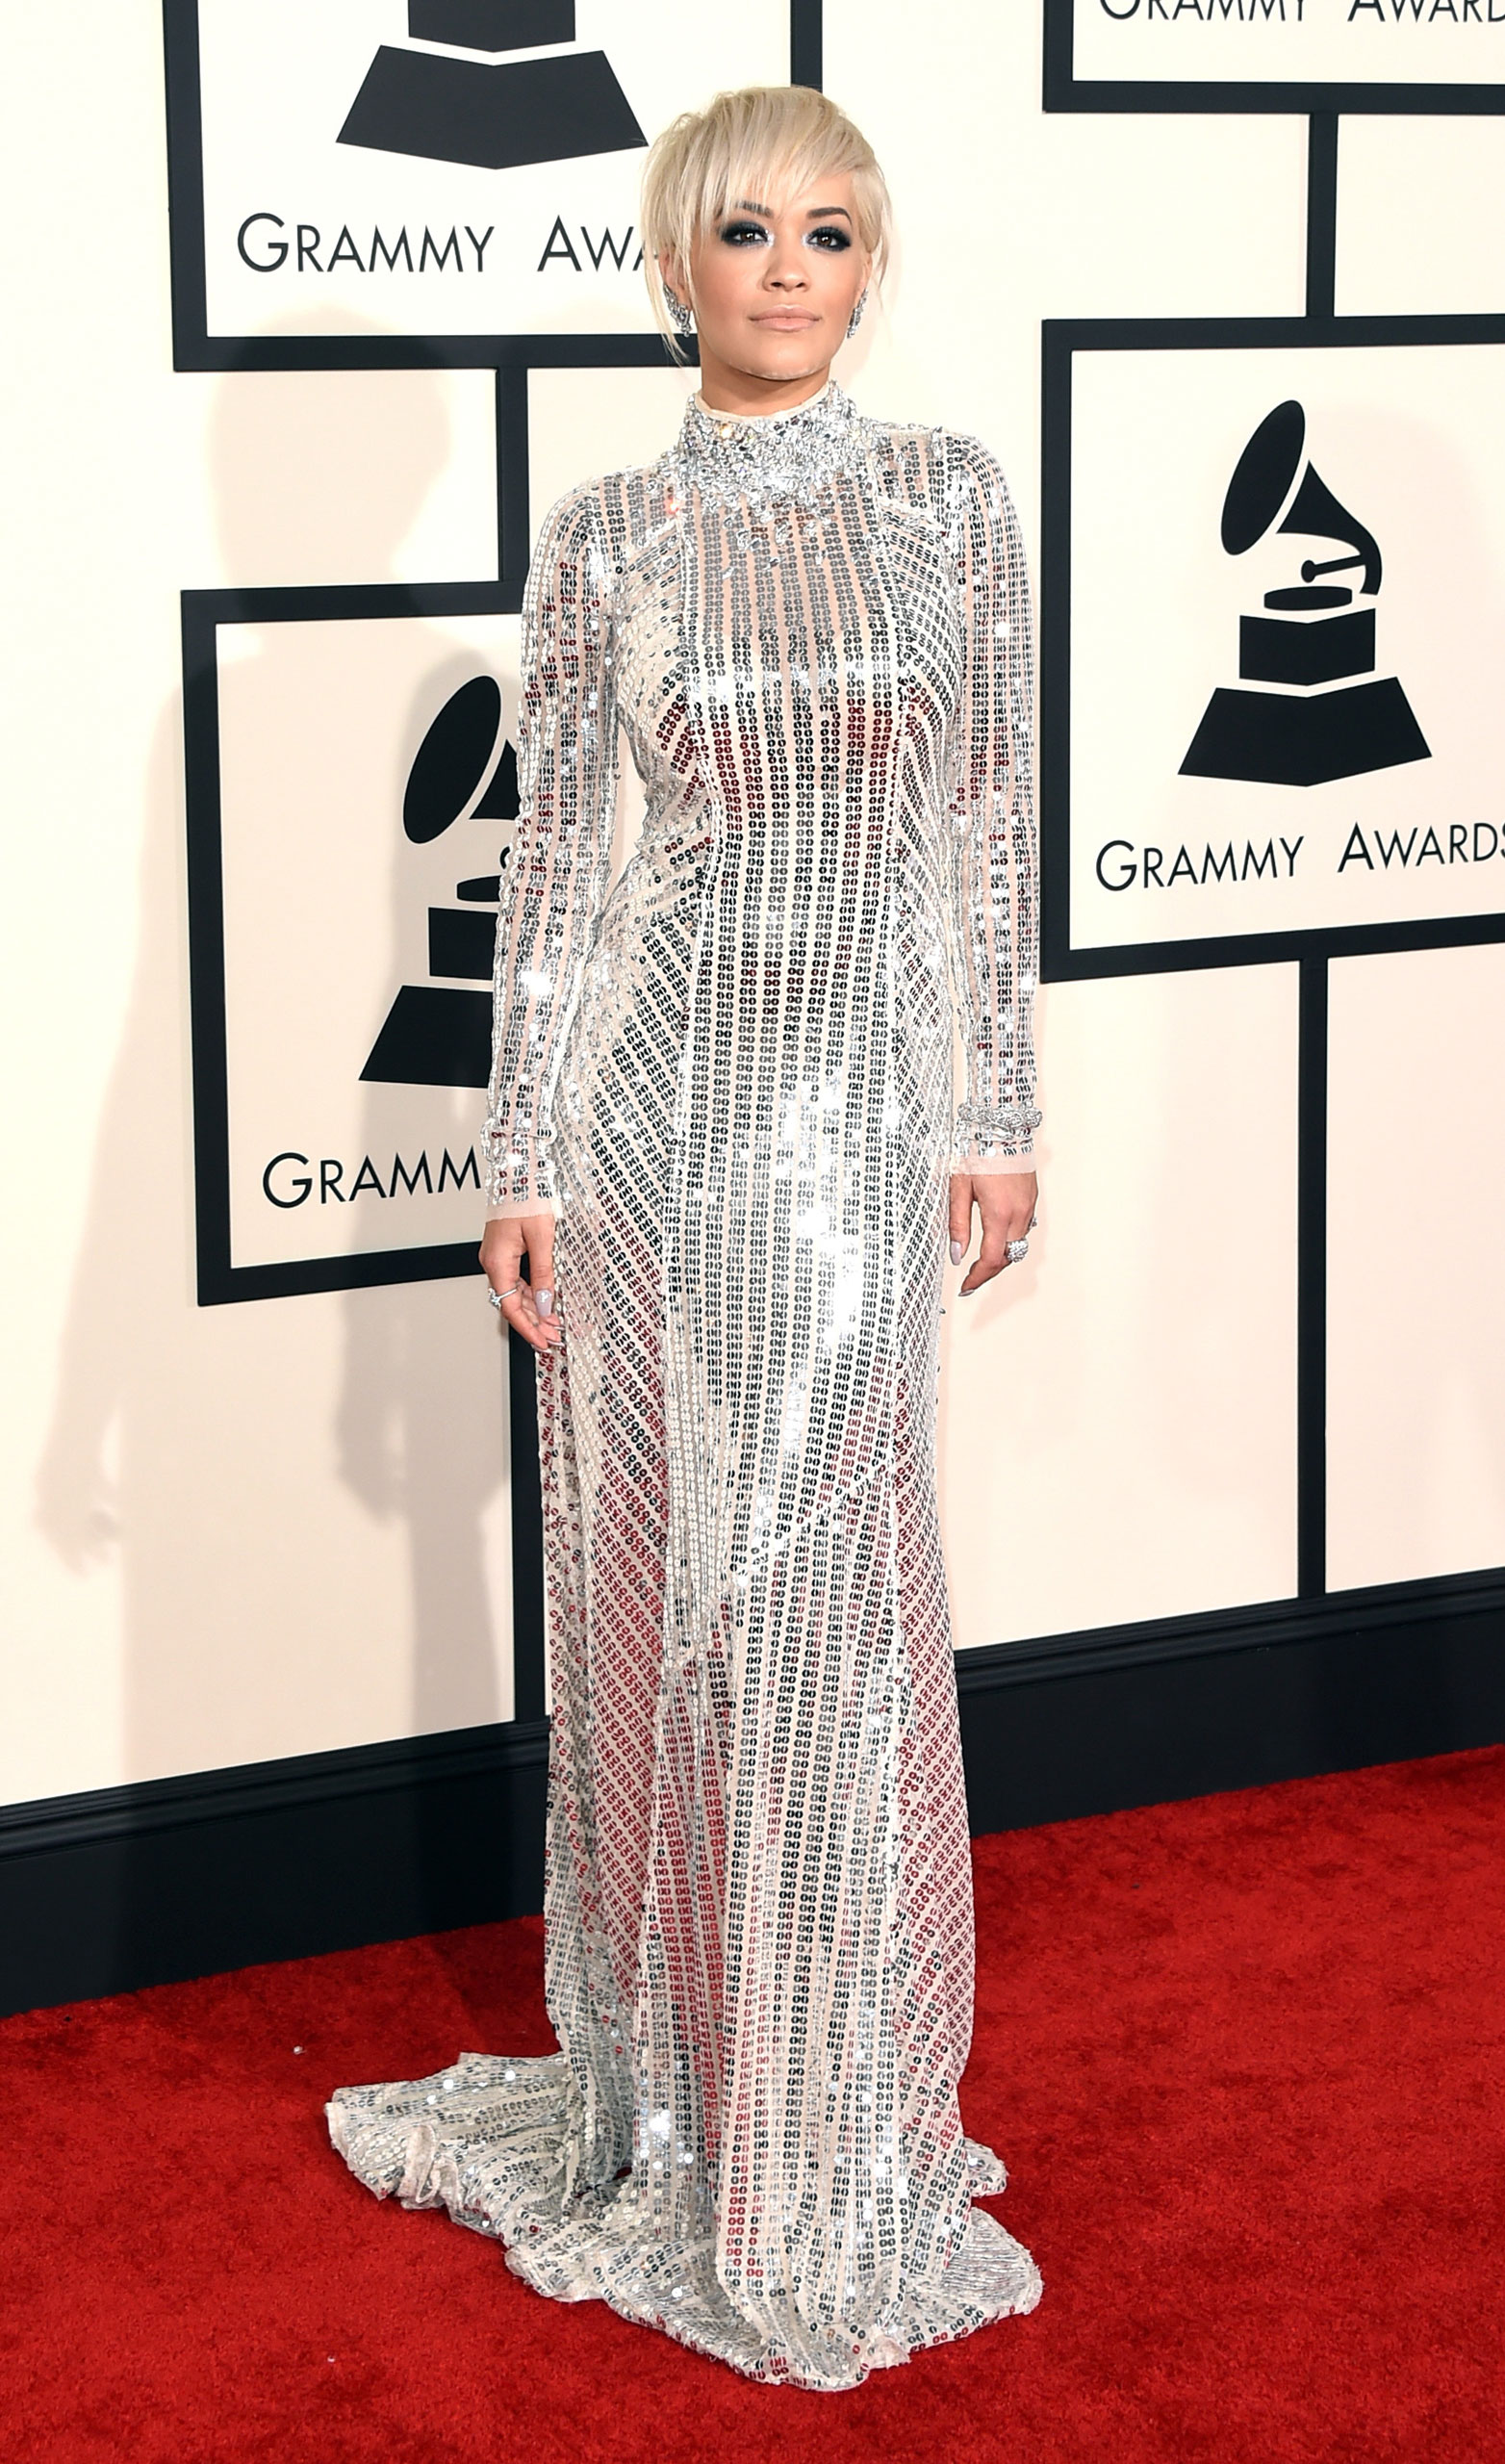 Rita Ora attends the 57th Annual Grammy Awards at the Staples Center on Feb. 8, 2015 in Los Angeles, Calif.